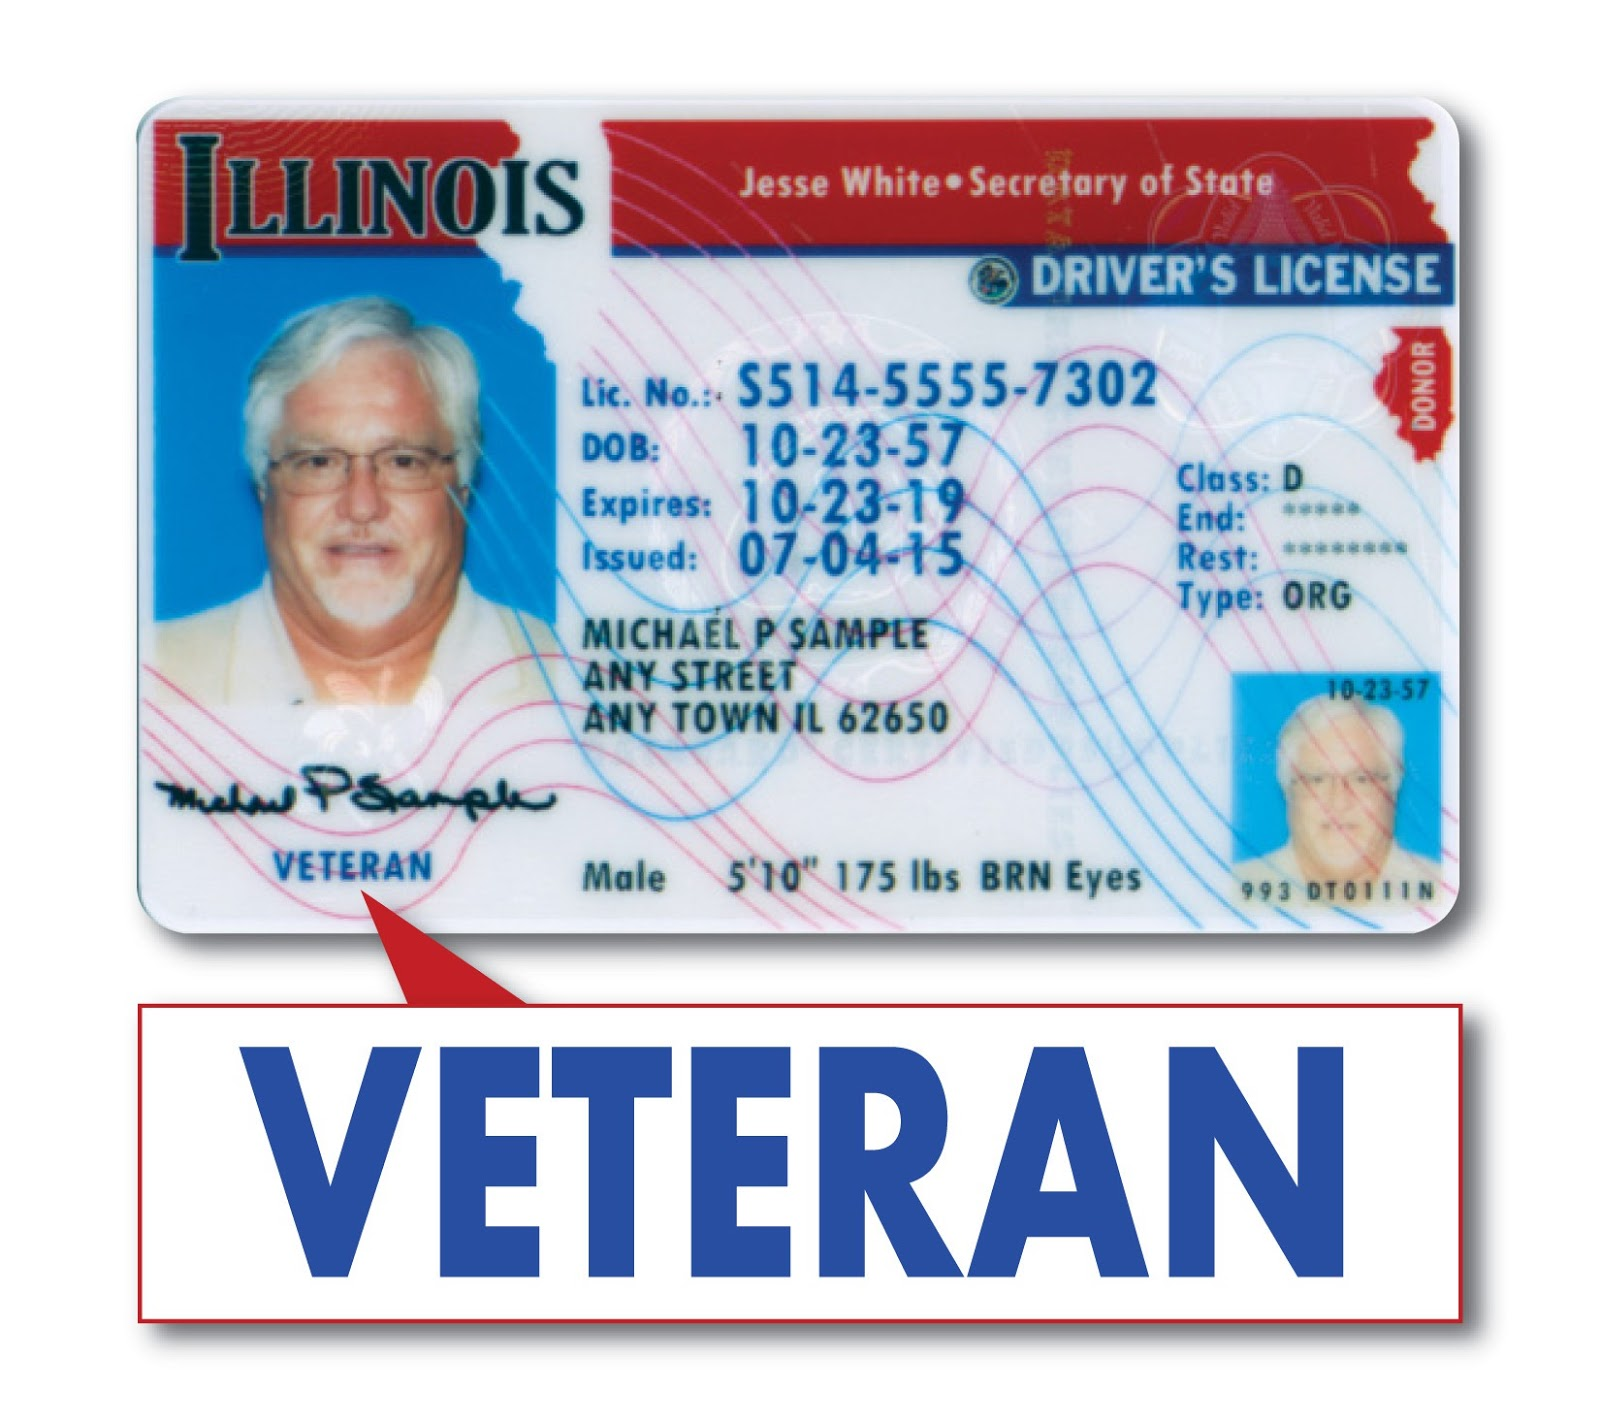 License Veterans State To Illinois Driver's Obtain Wheeler Able Barbara Now Special Representative